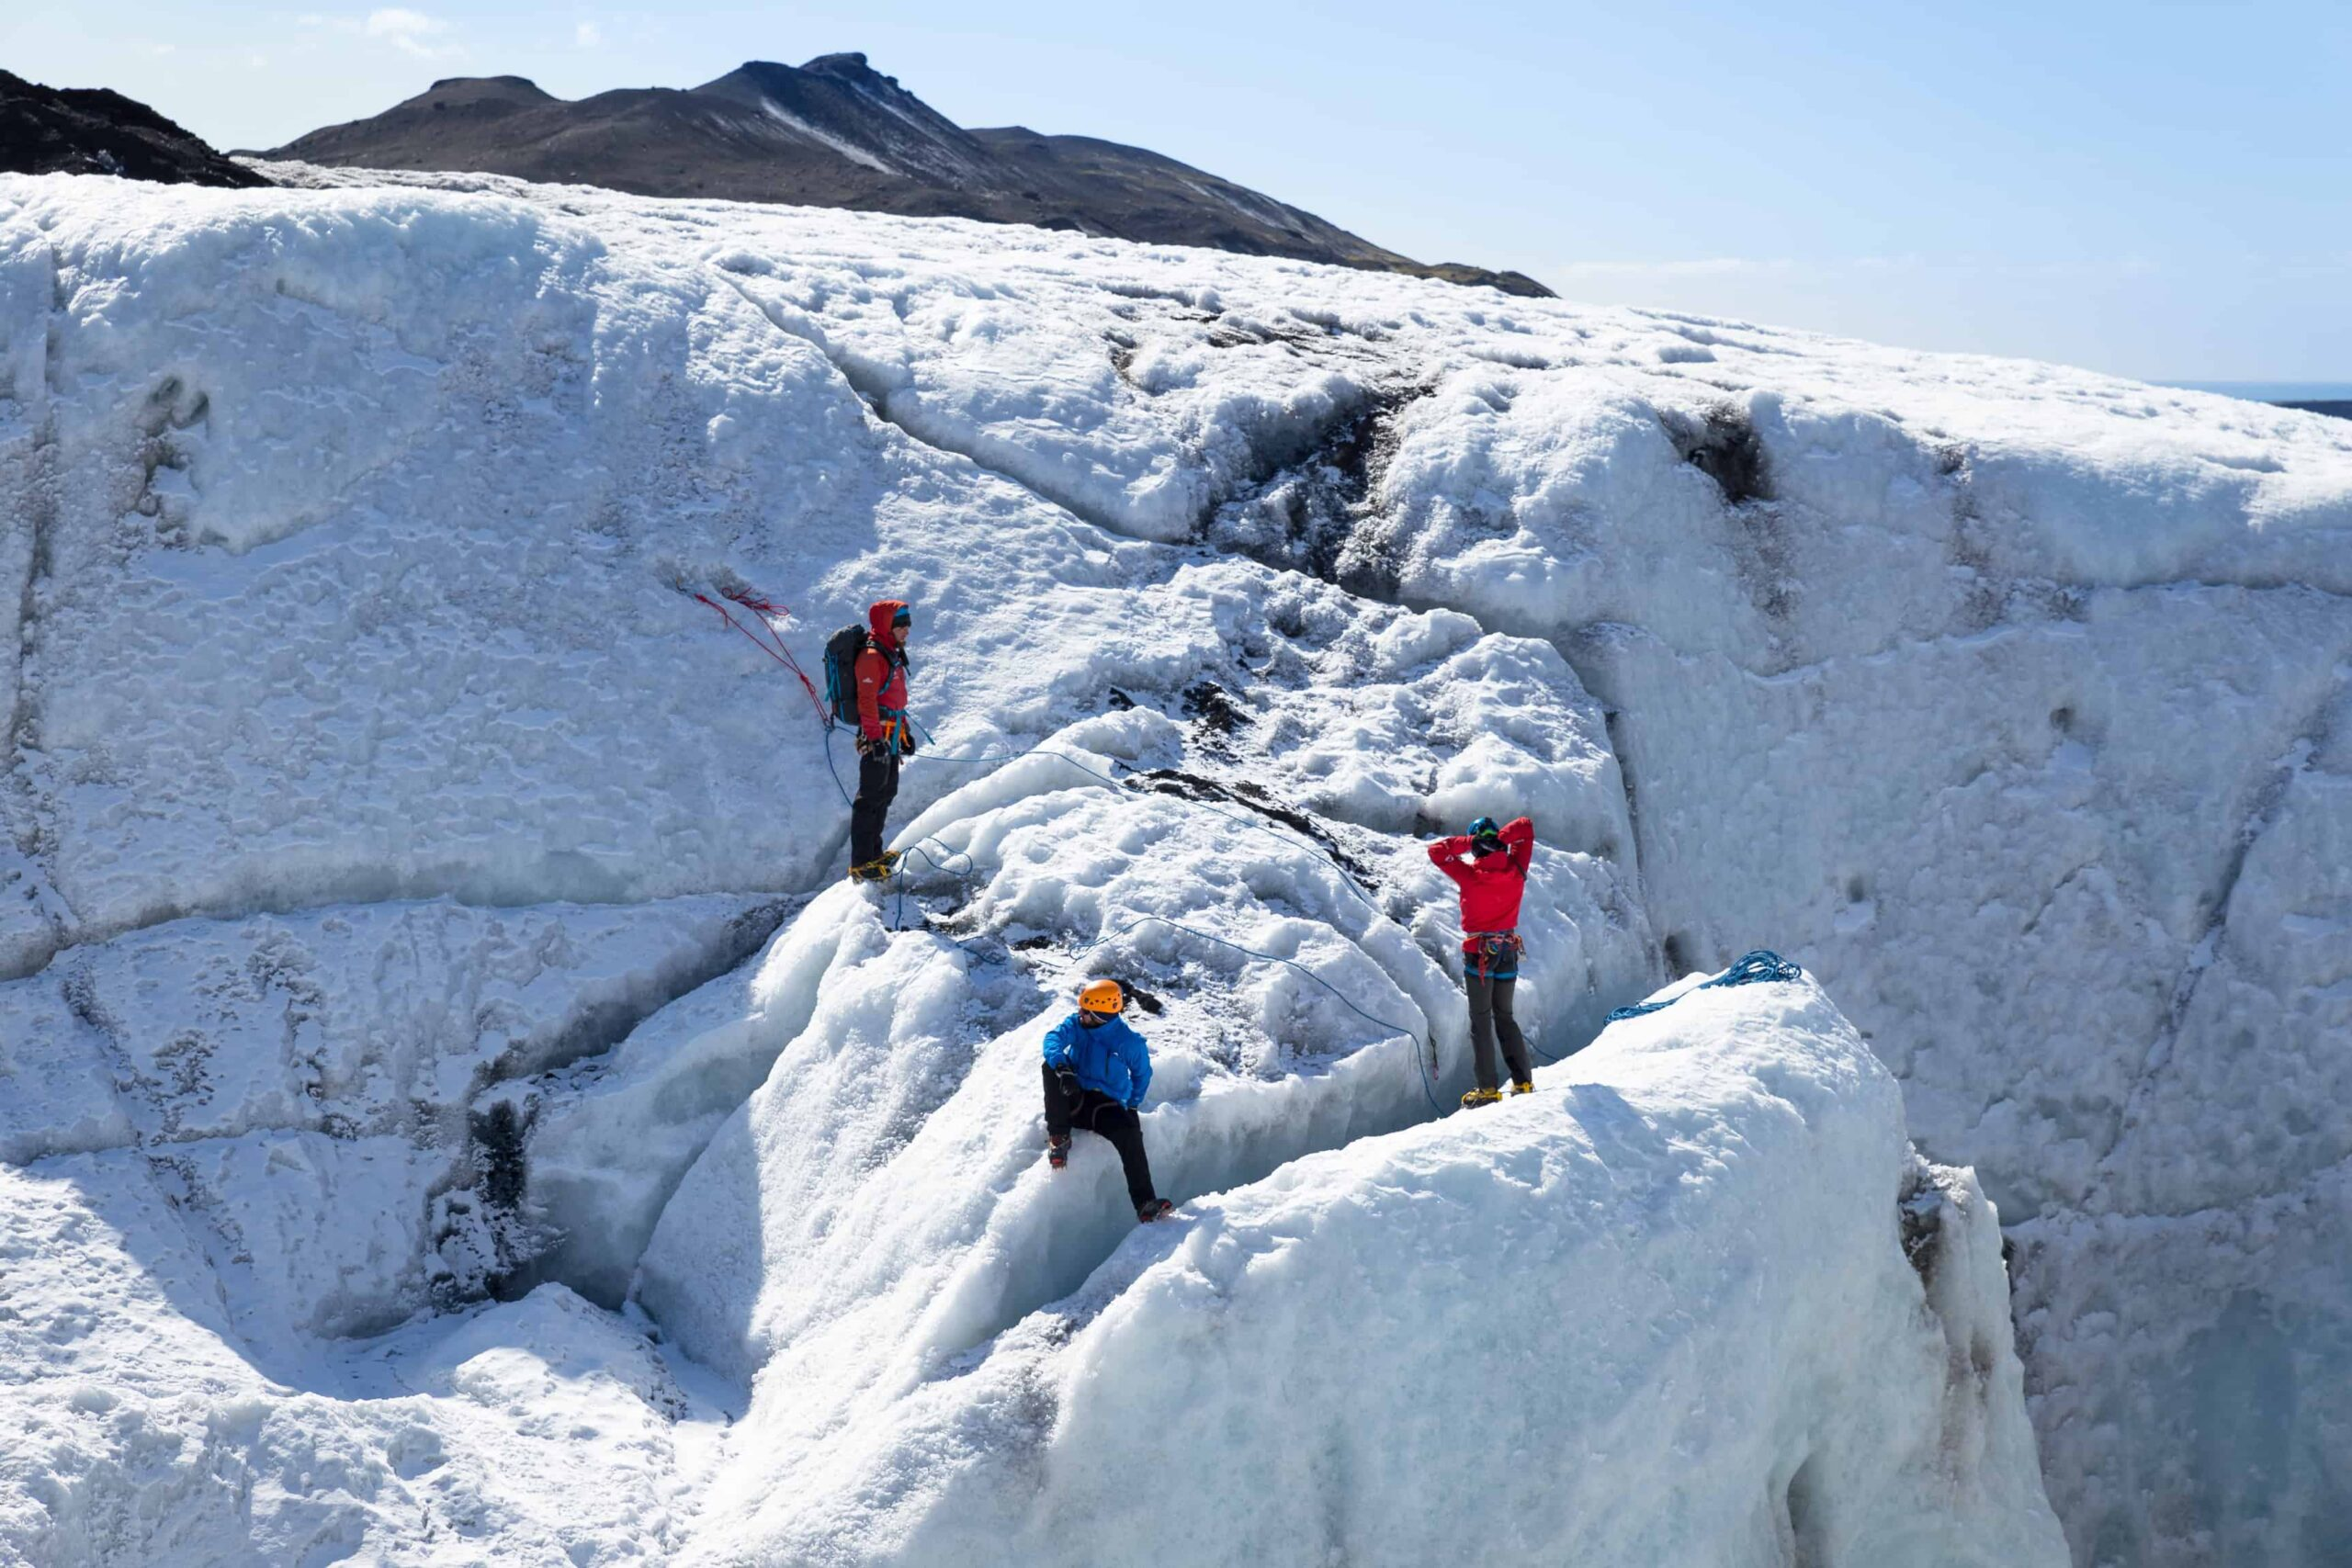 Sólheimajokull glacier hike and ice climbing in south Iceland